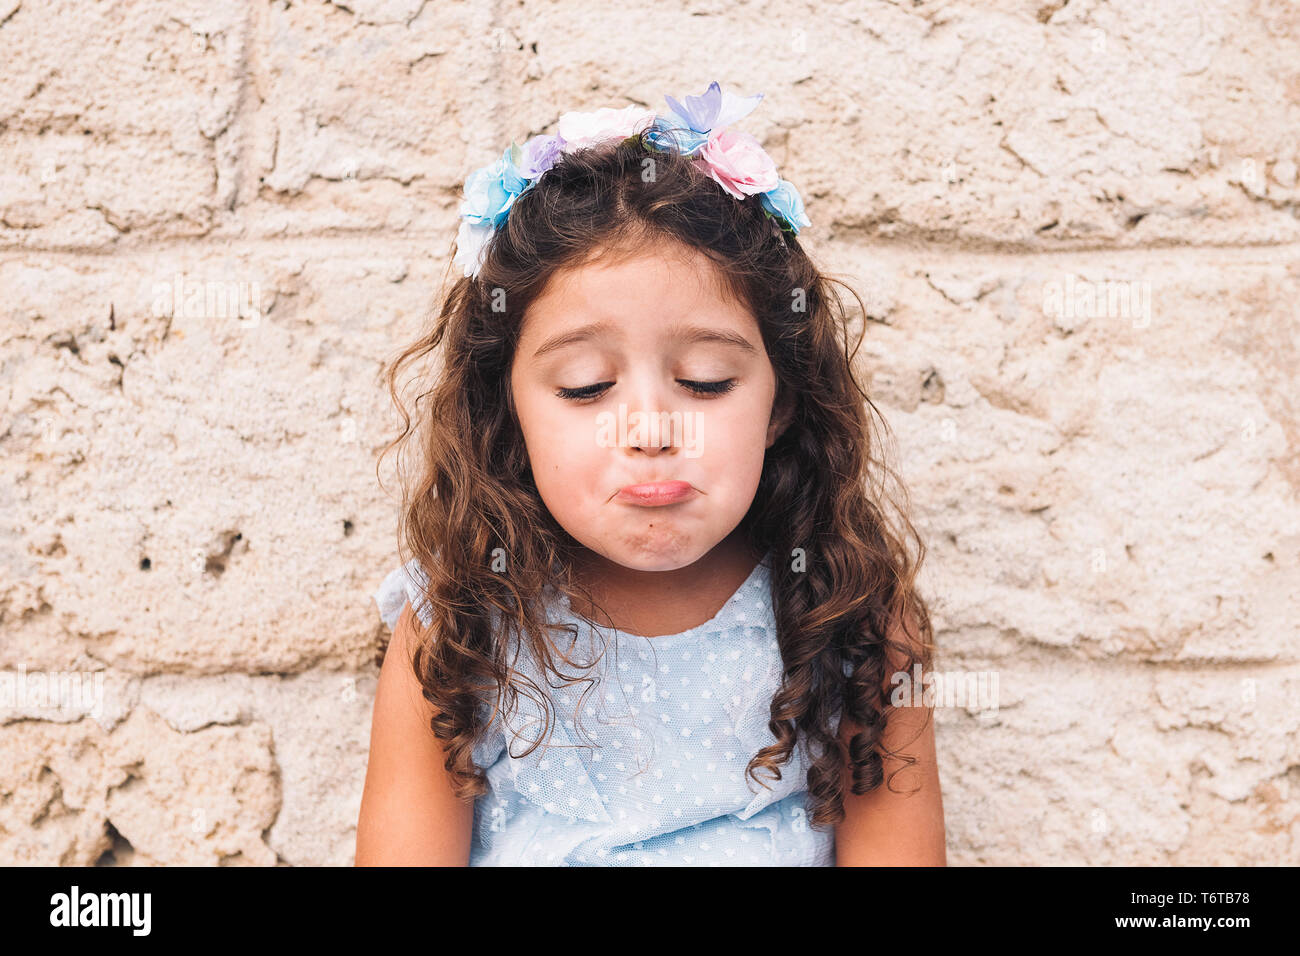 little girl making fun with sad face, is in front of a stone wall and wears a blue dress and a flower headband Stock Photo